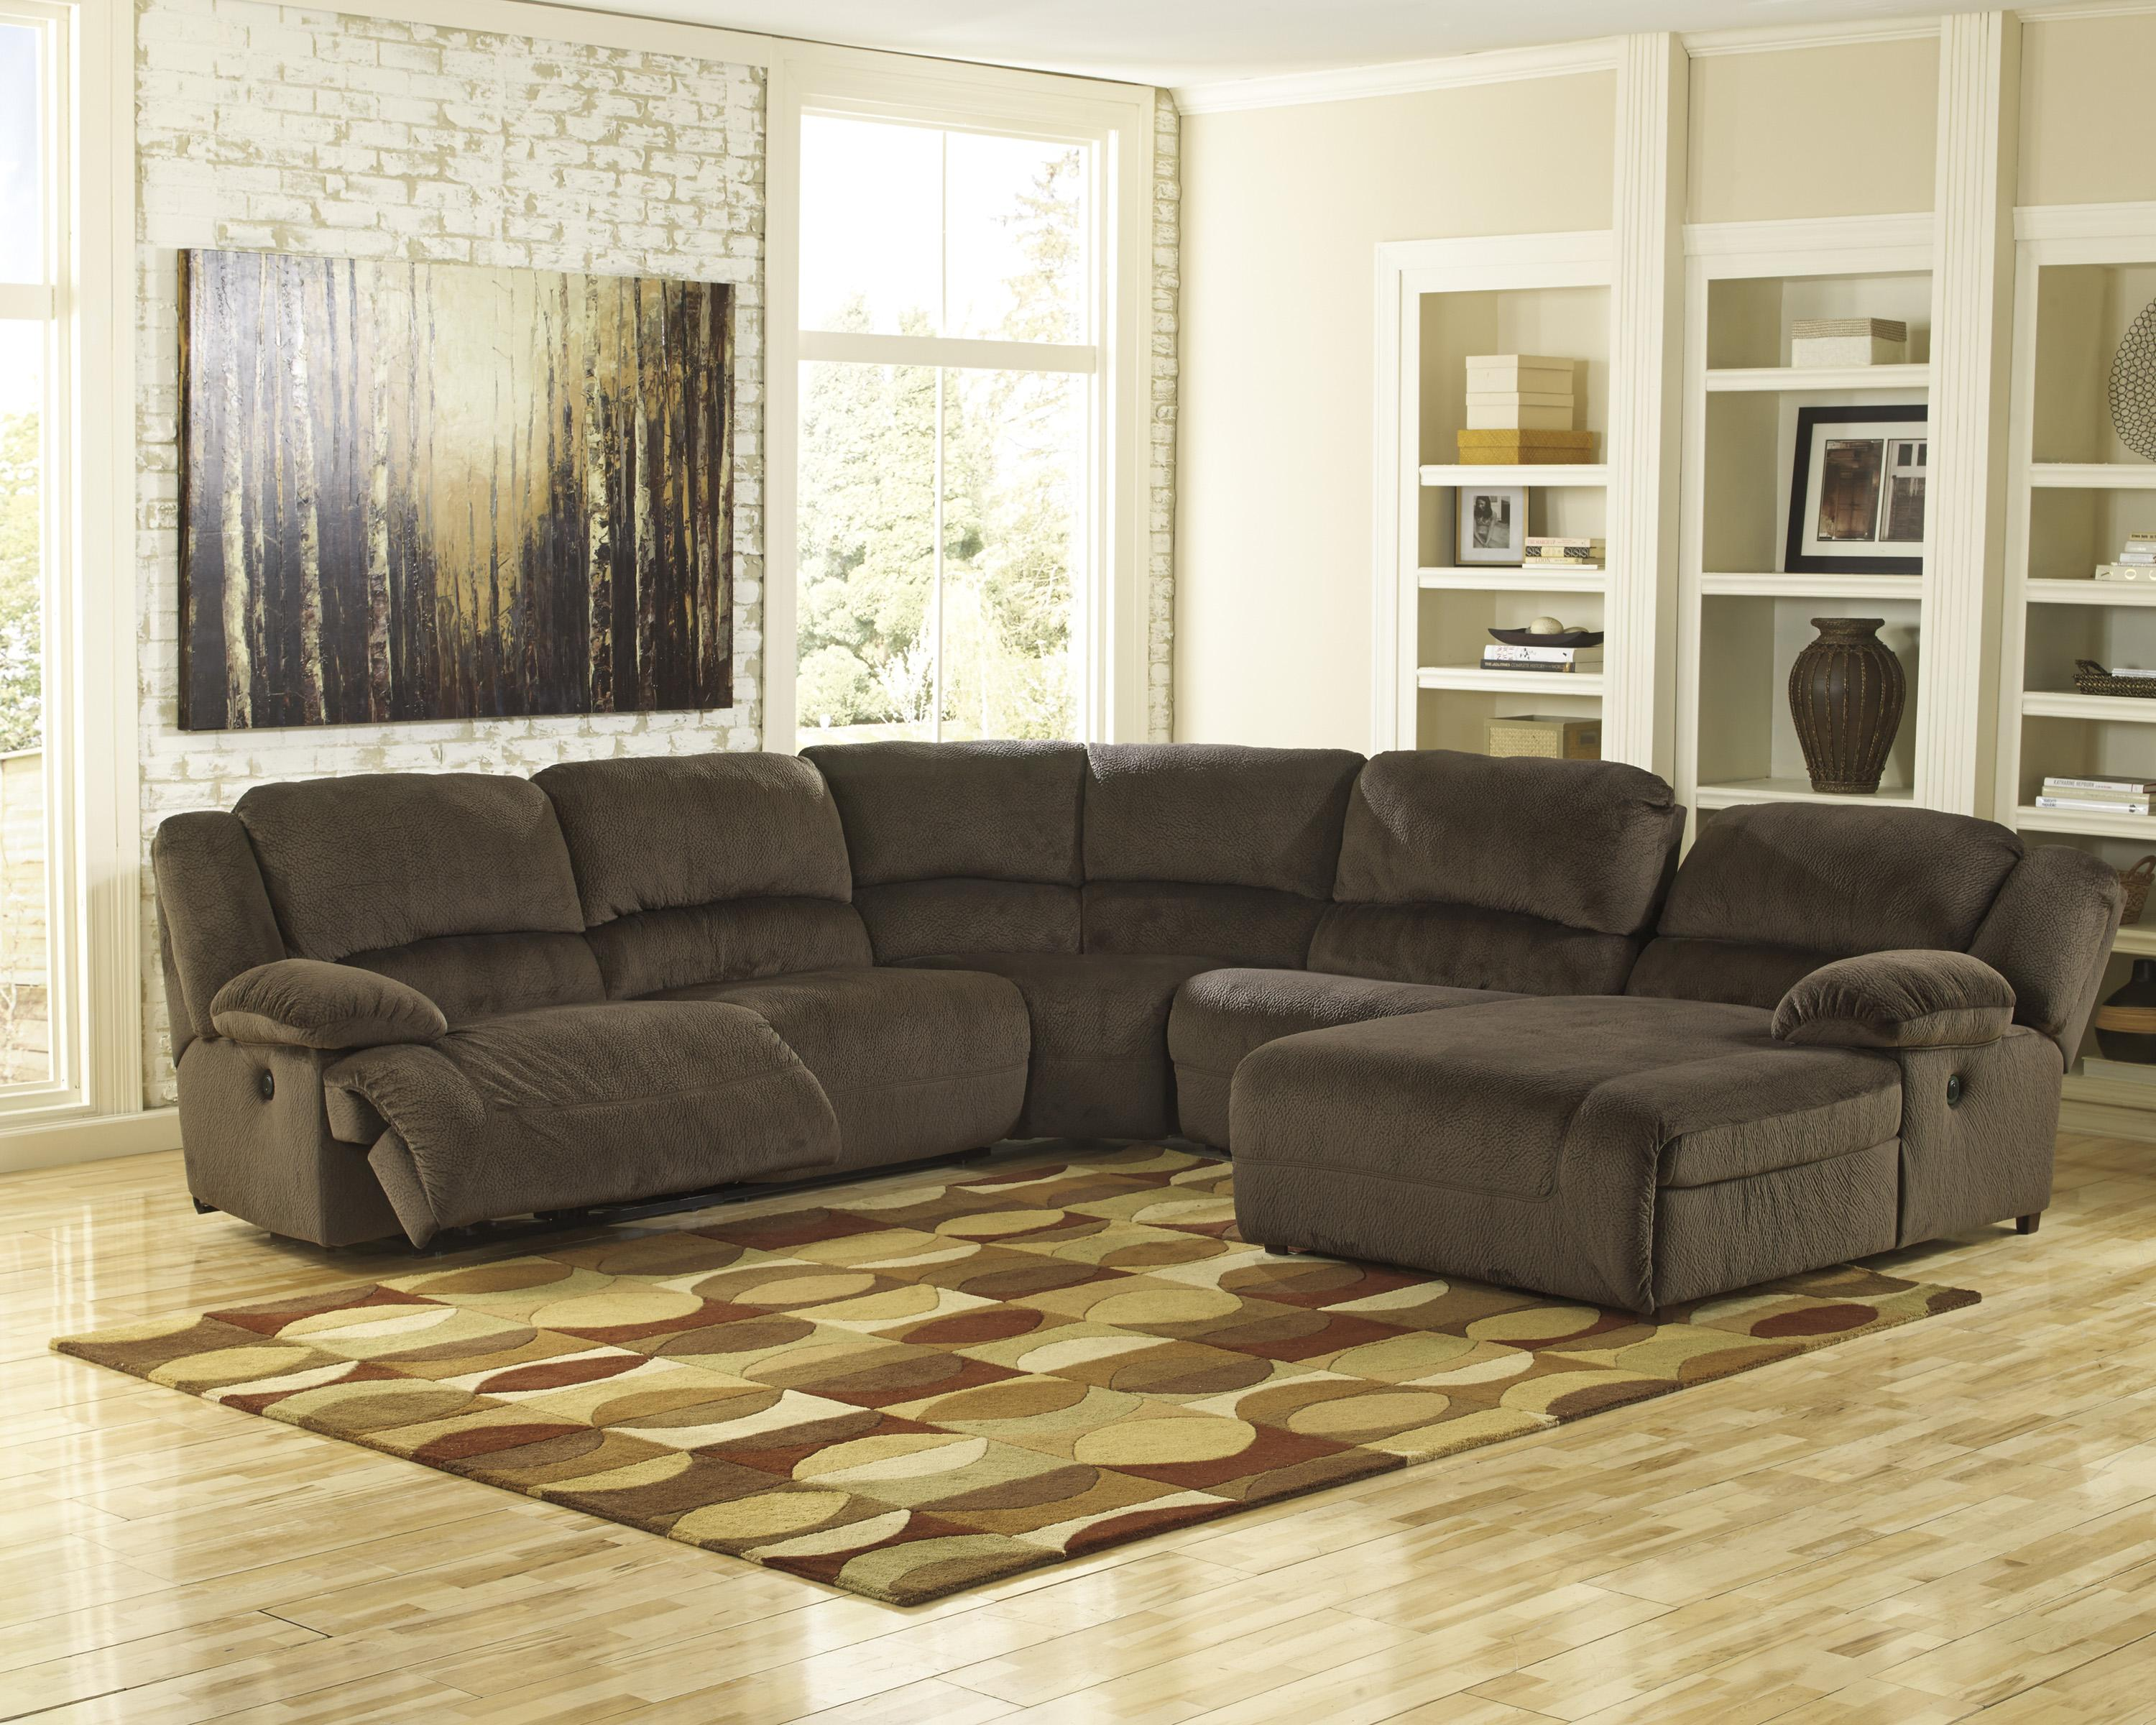 Power reclining sectional with right press back chaise by for Ashley chaise sectional